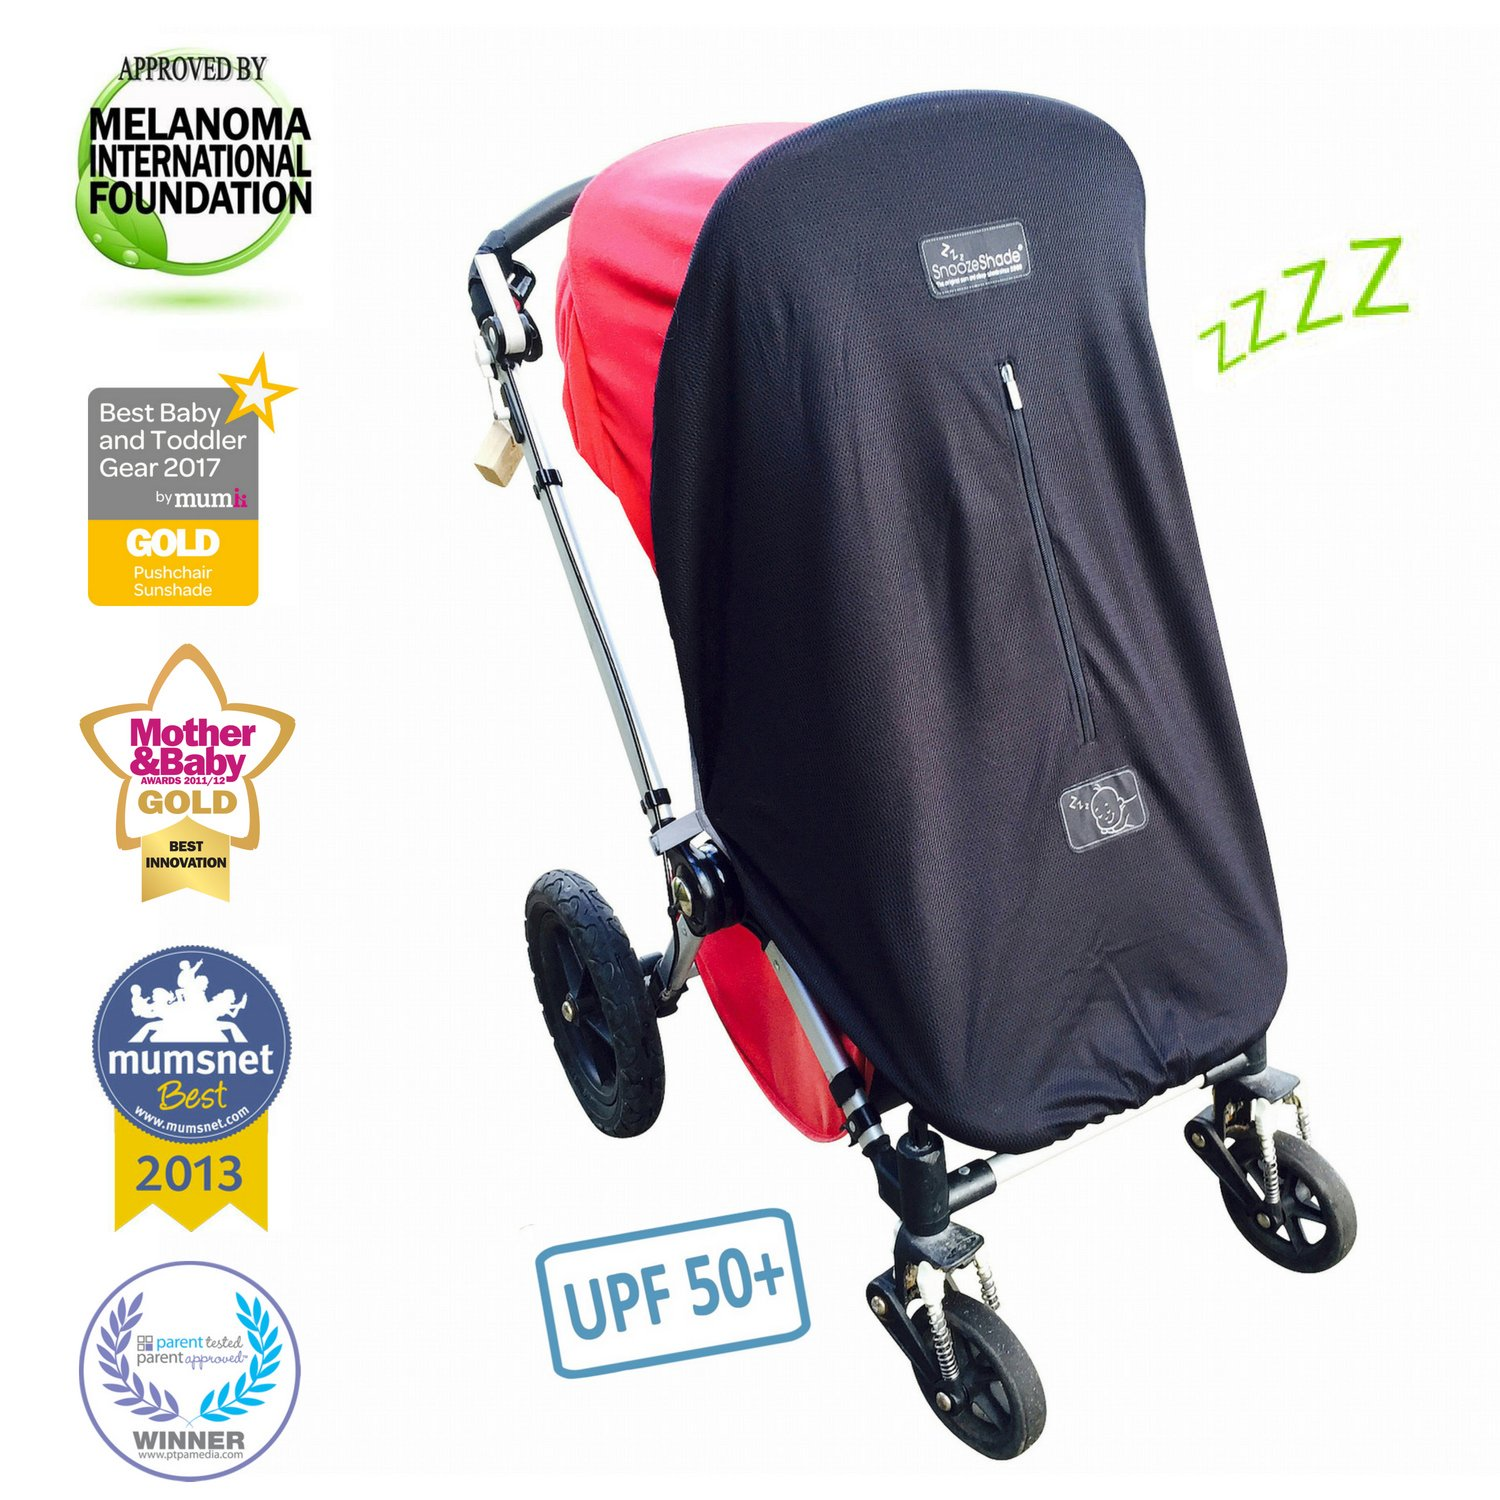 Baby Sun Shade and Blackout Blind for Strollers   Blocks 99% of UV   Breathable and Universal fit   SnoozeShade Original - Limited Edition (Gray Trim)